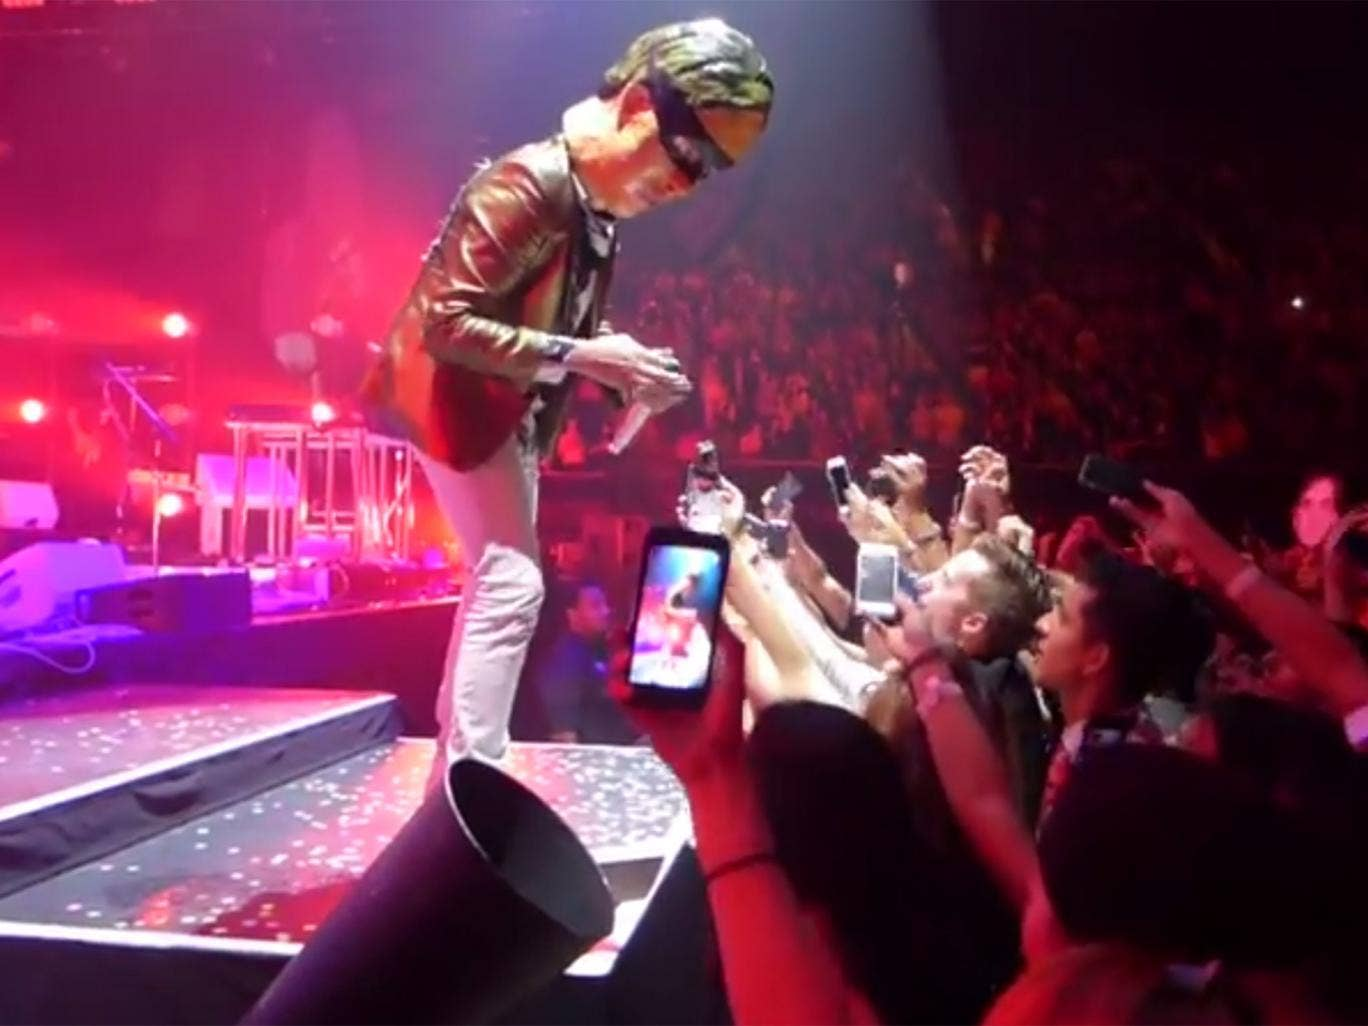 Win Butler of Arcade Fire 'steals' mobile phones from fans